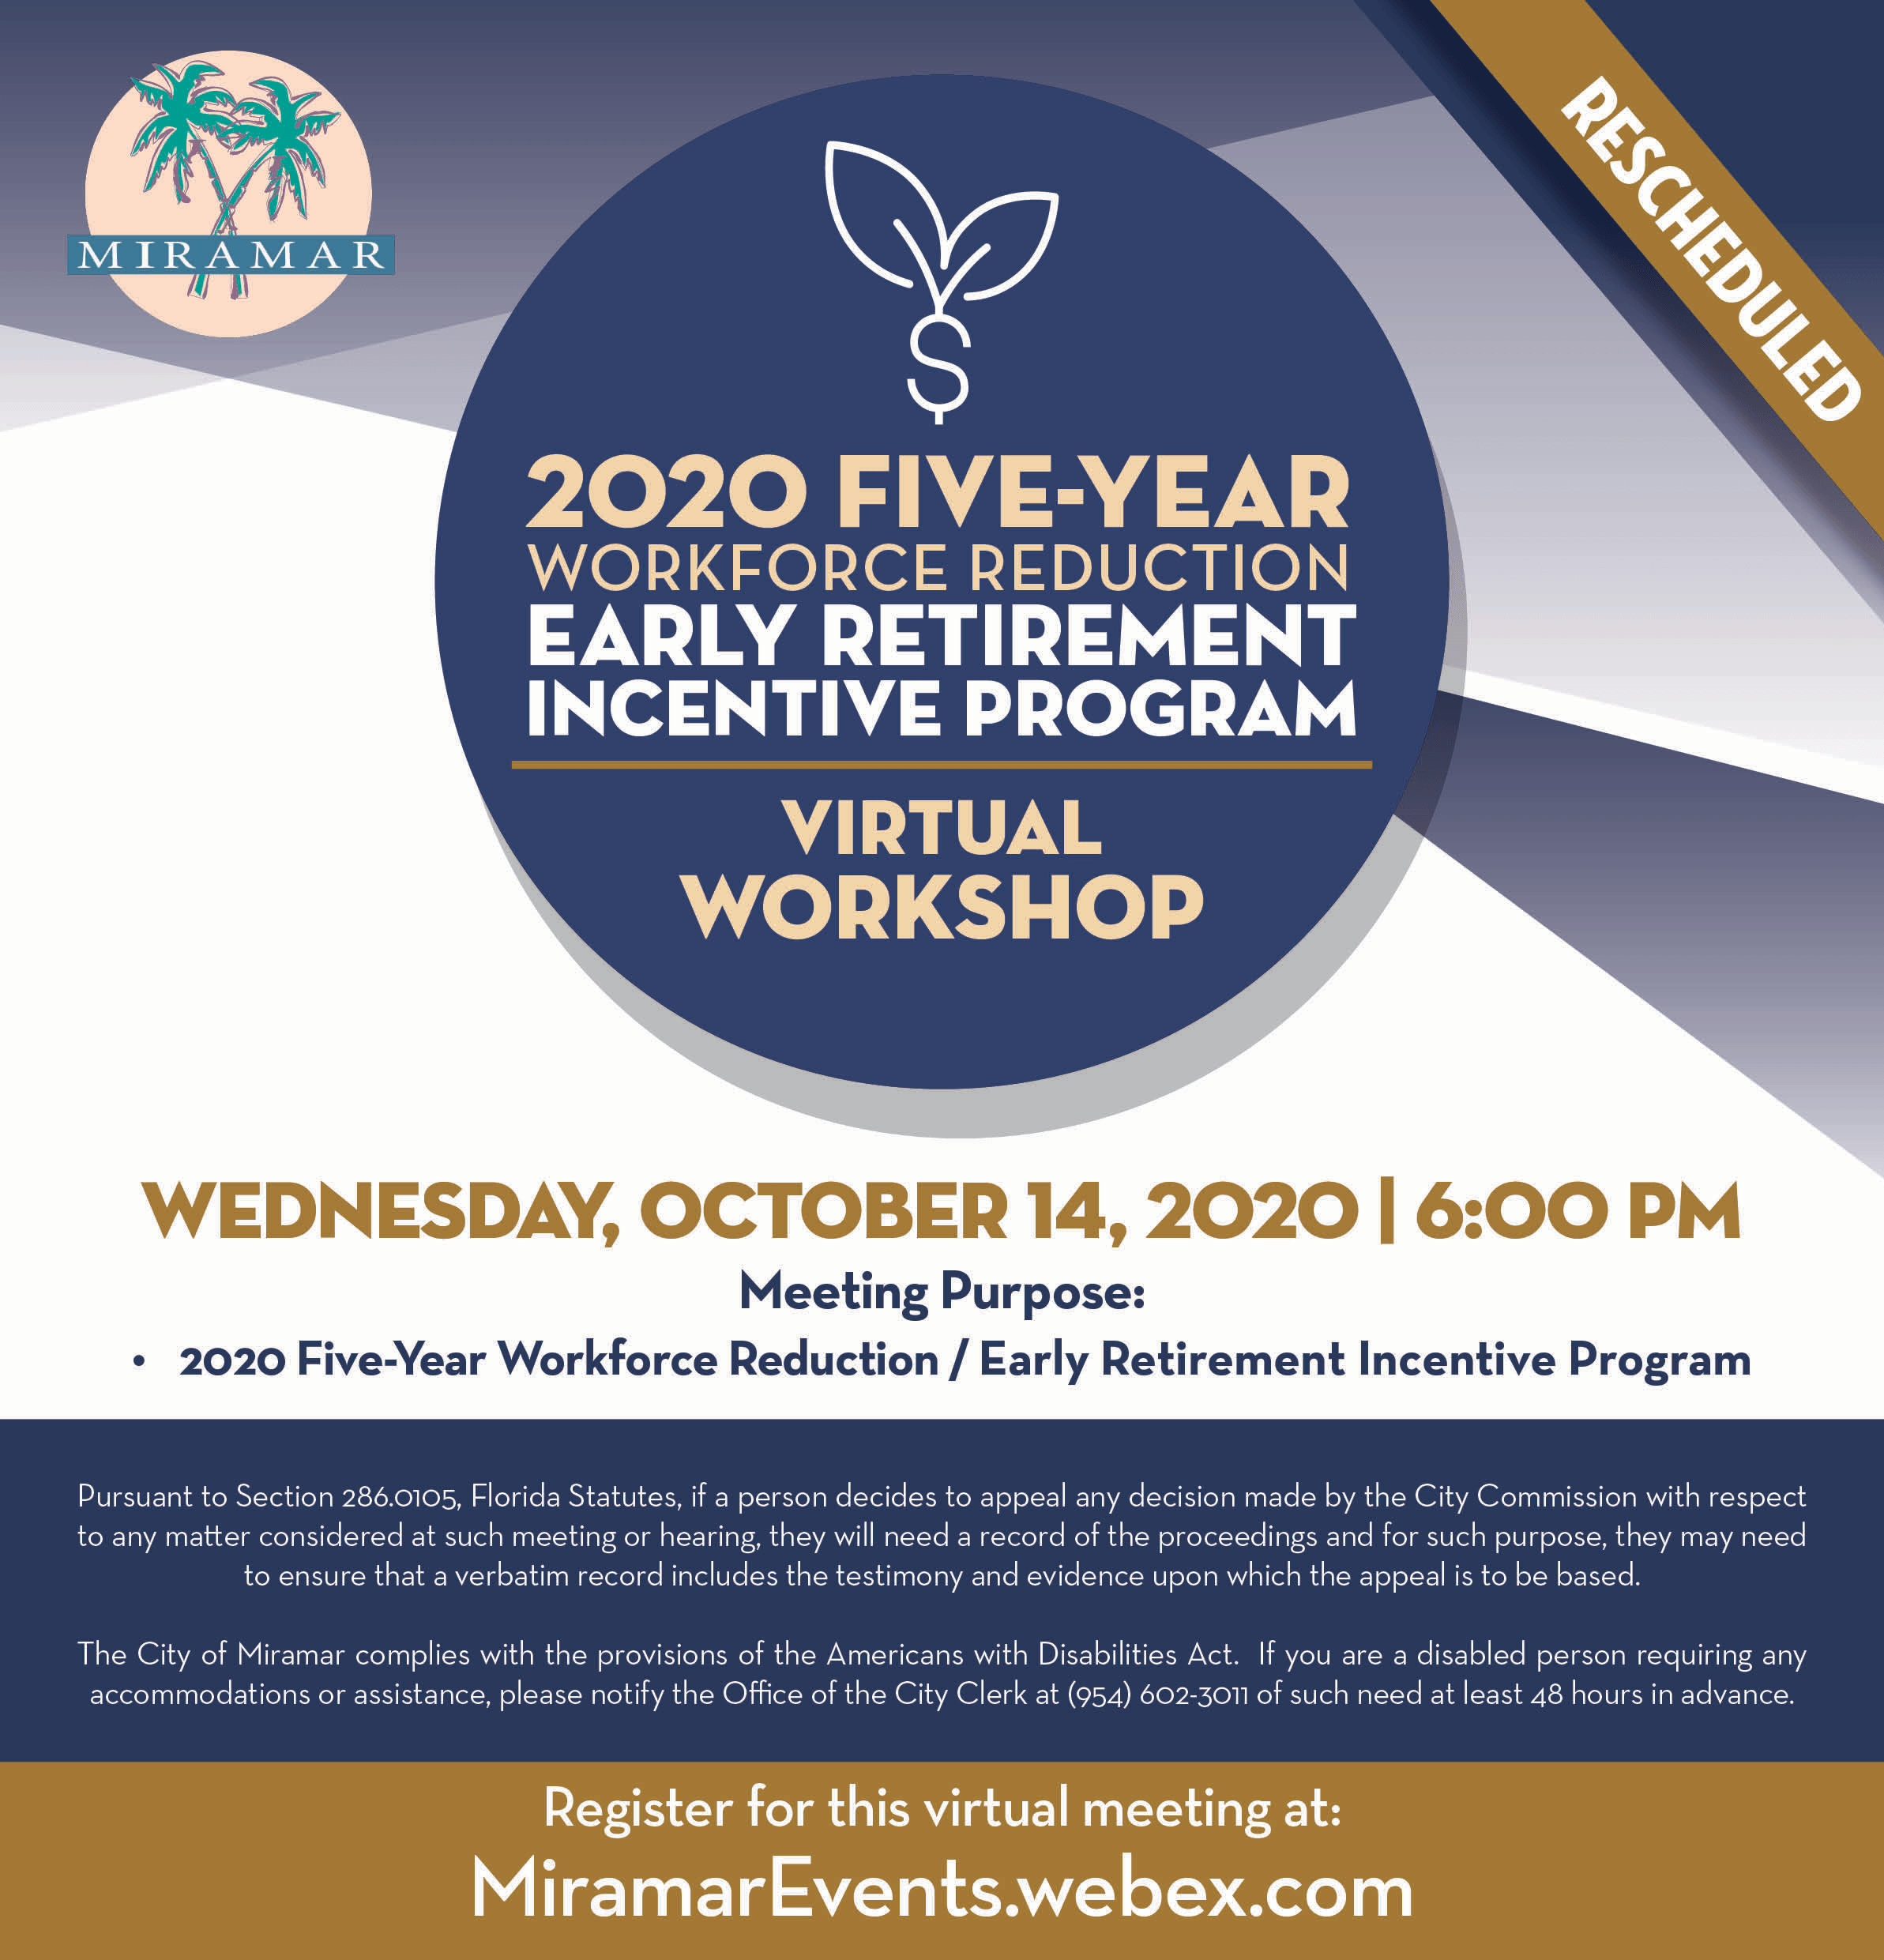 Early Retirement Incentive Program Workshop 0930 - Home Page Banner